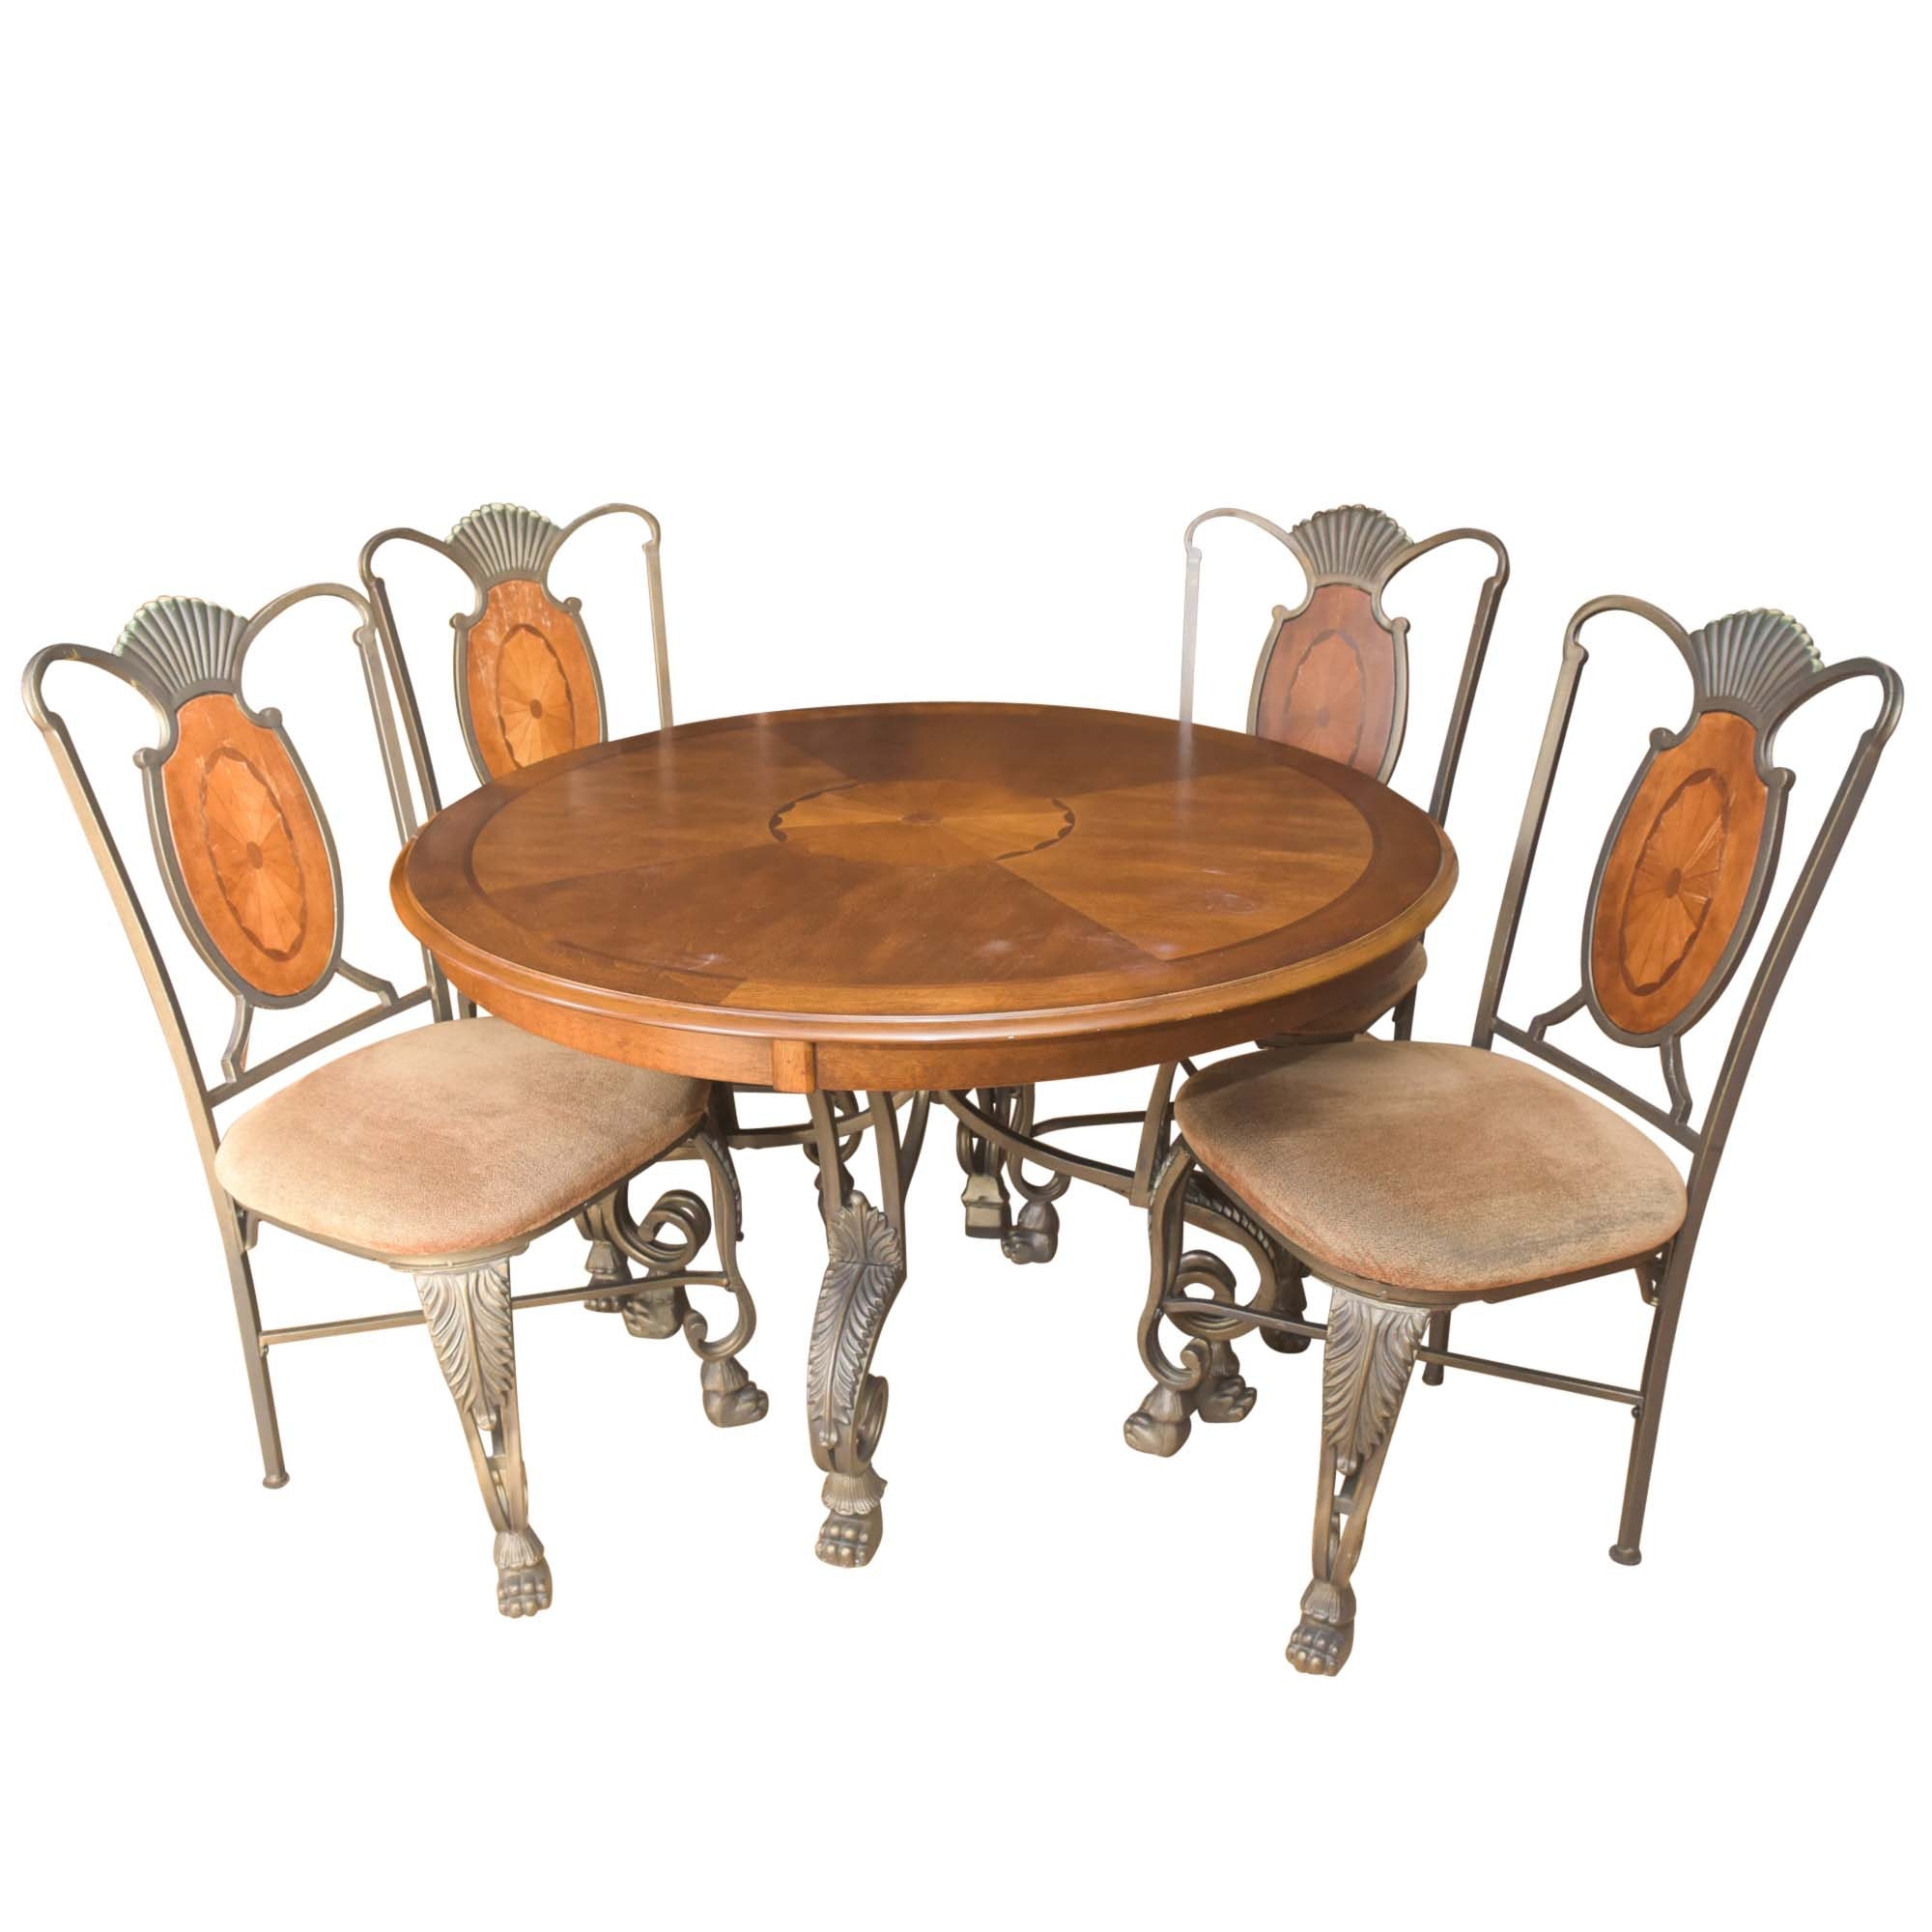 Neoclassical Style Dining Table with Side Chairs by Ashley Furniture